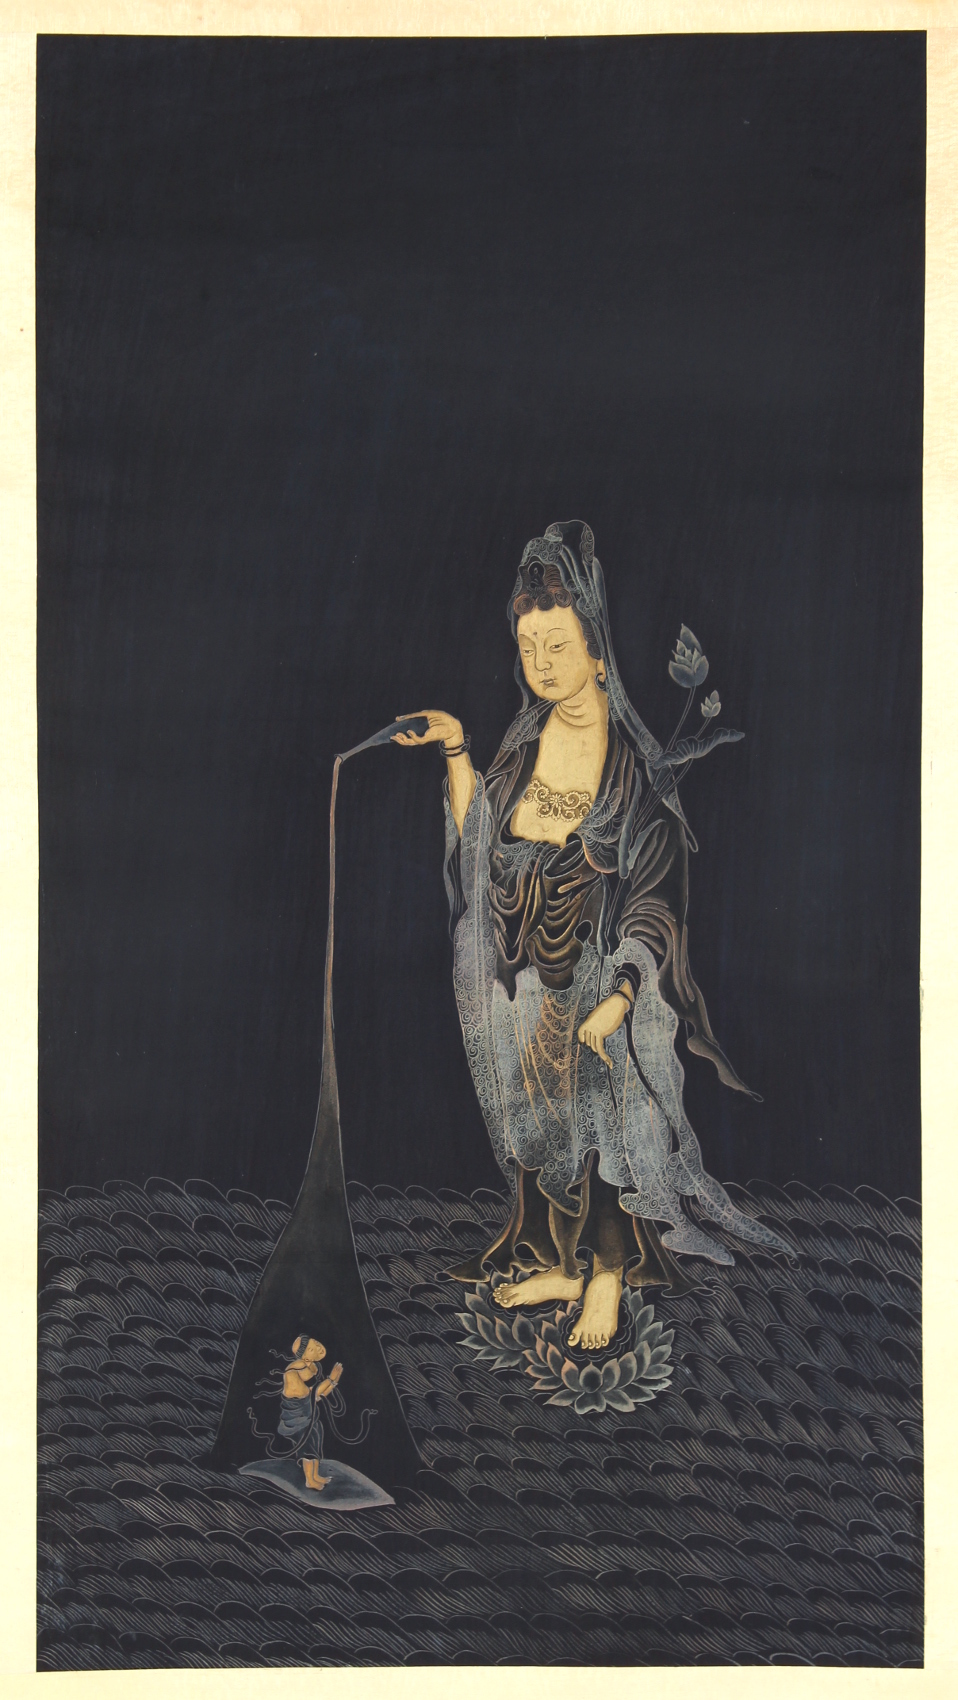 Property of a gentleman - an early 20th century Chinese scroll painting depicting Guanyin, the